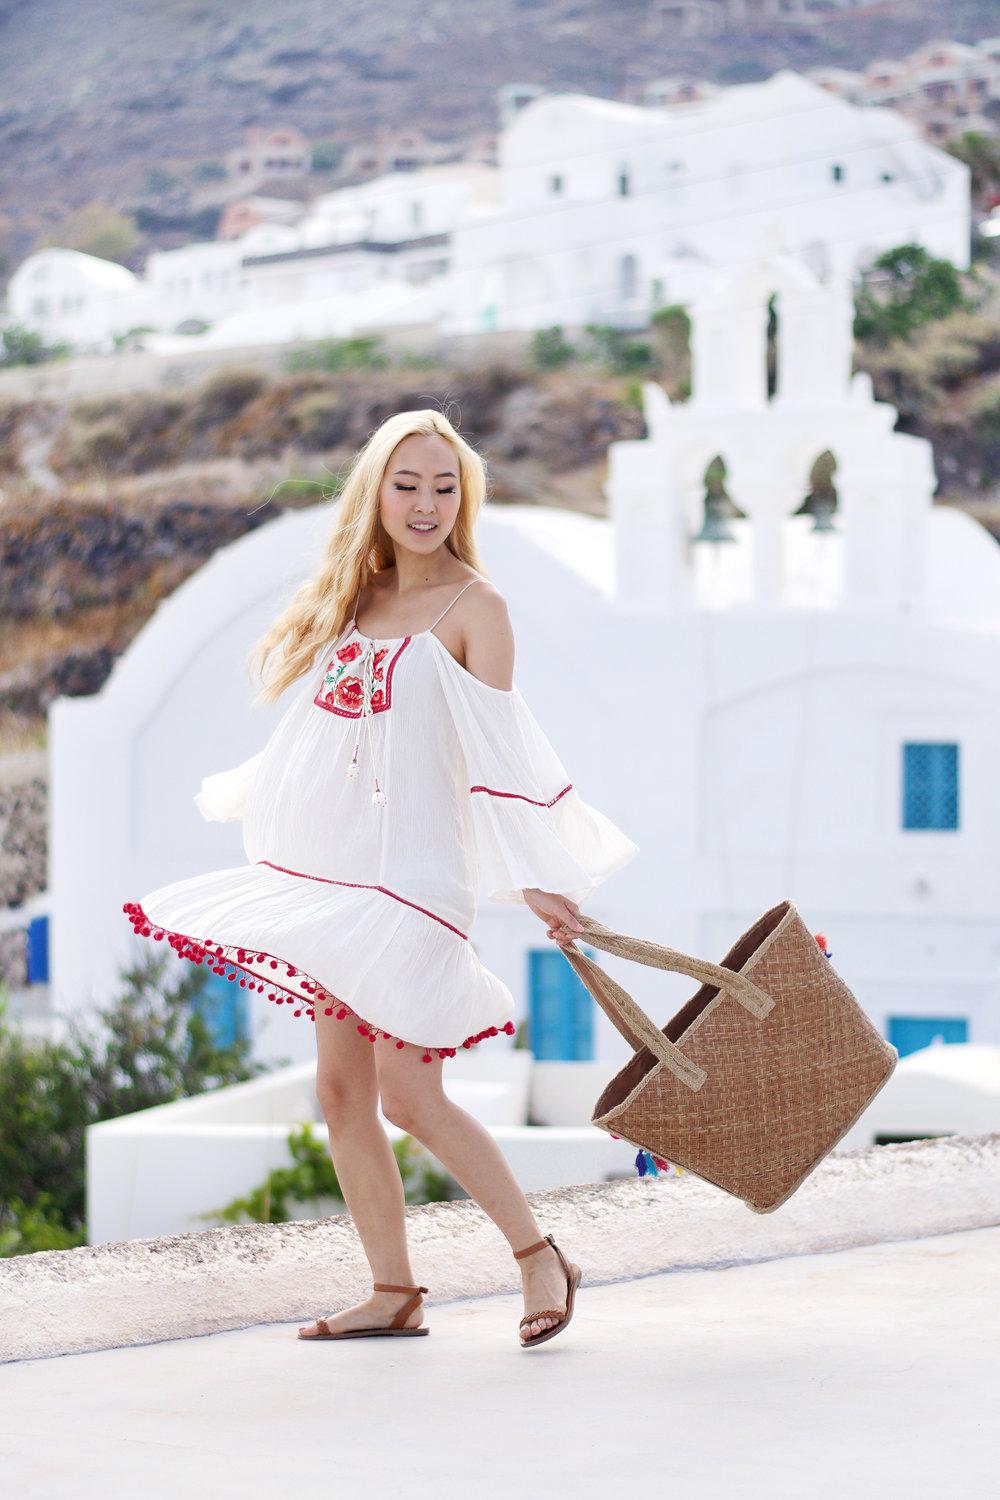 Happy Summer Loves! Summer has officially started and I'm basically jumping up and down thinking of everything I want to do in the amazing weather! The first outfit I wore in Greece for my Santorini Lookbook is all about the perfect sundress. |  #ontheblog  | #SantoriniFashion | #travelSantorini |  #summerfashion  |  #traveloutfit  |  #Greece  | Forever 21 | Madewell | sundress |